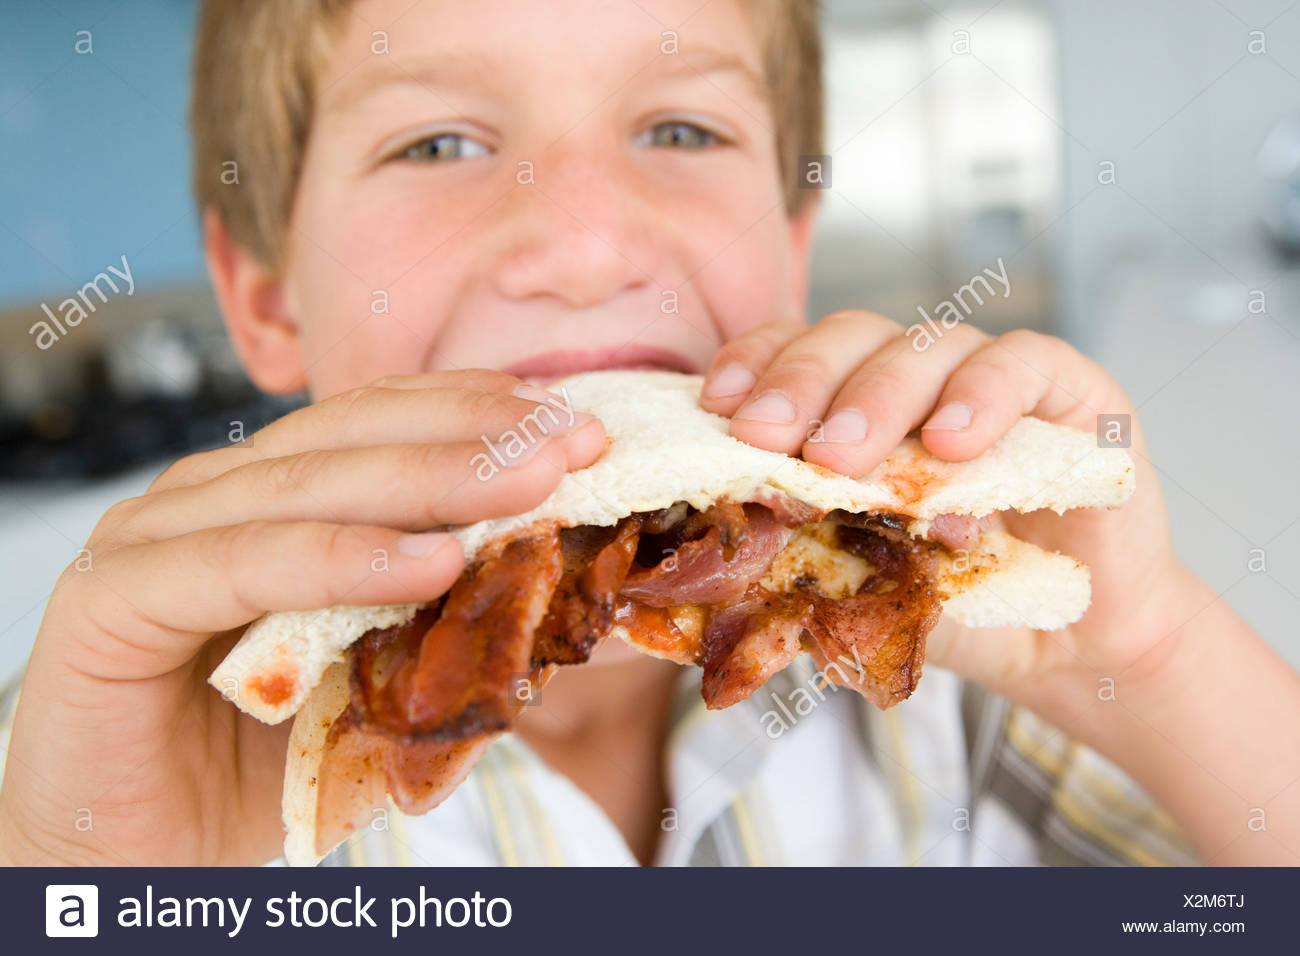 Young boy in kitchen eating bacon sandwich - Stock Image